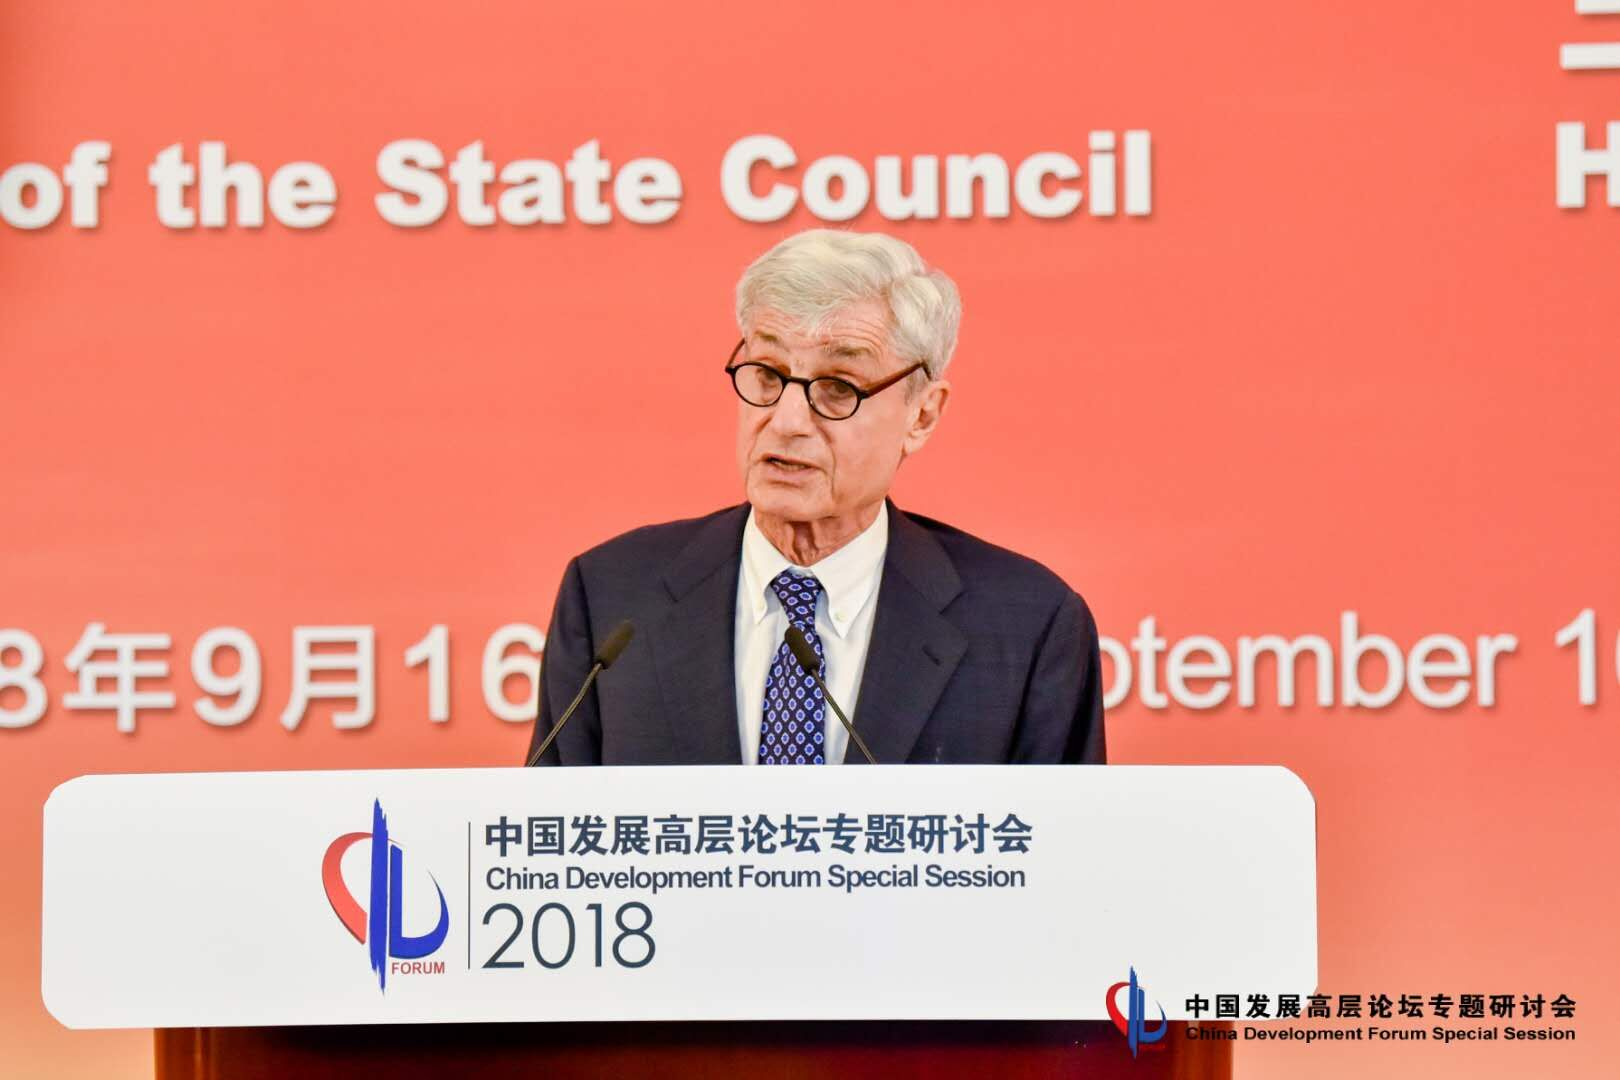 Former U.S. Treasury Secretary Robert Rubin speaks at the China Development Forum Special Session in Beijing, Sept. 16, 2018. [Photo courtesy of the China Development Forum Special Session]